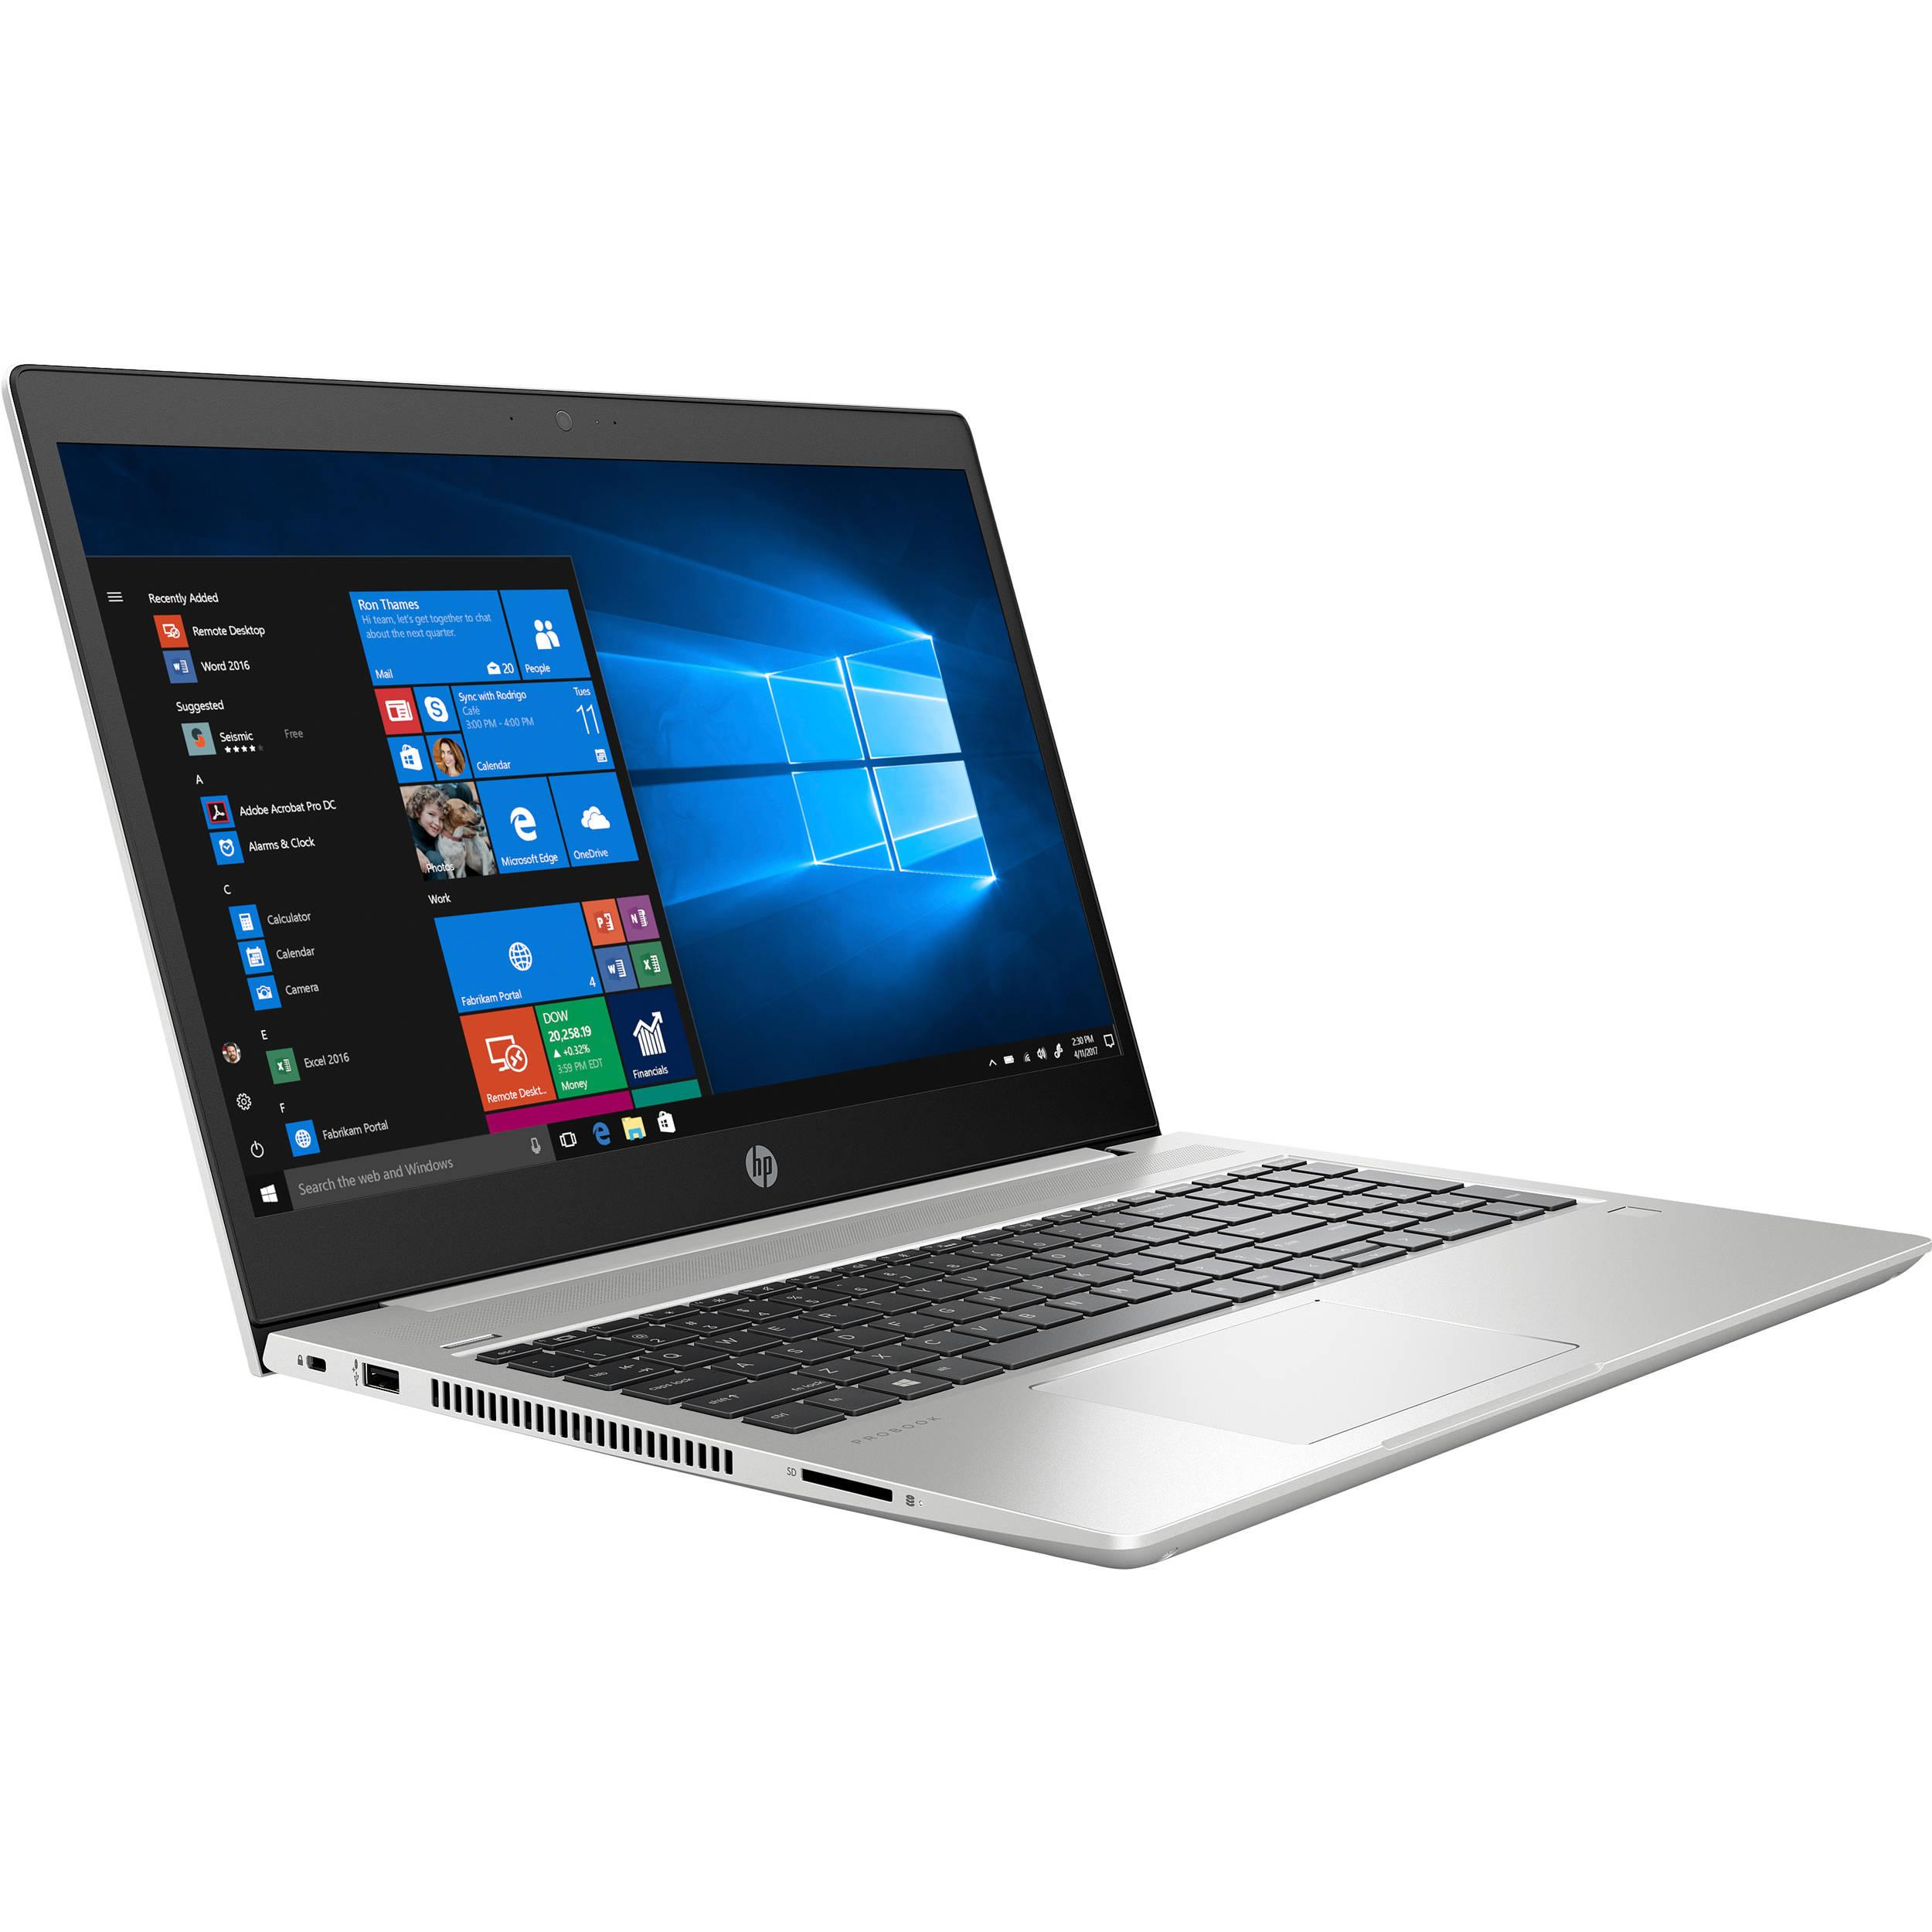 HP ProBook 450 G6 Core™ i5-8265U 1.6GHz 256GB 8GB 15.6  (1920x1080) BT WIN10 Pro Webcam SILVER FP Reader. 1 Year Warranty, Retail Box, New Factory Sealed